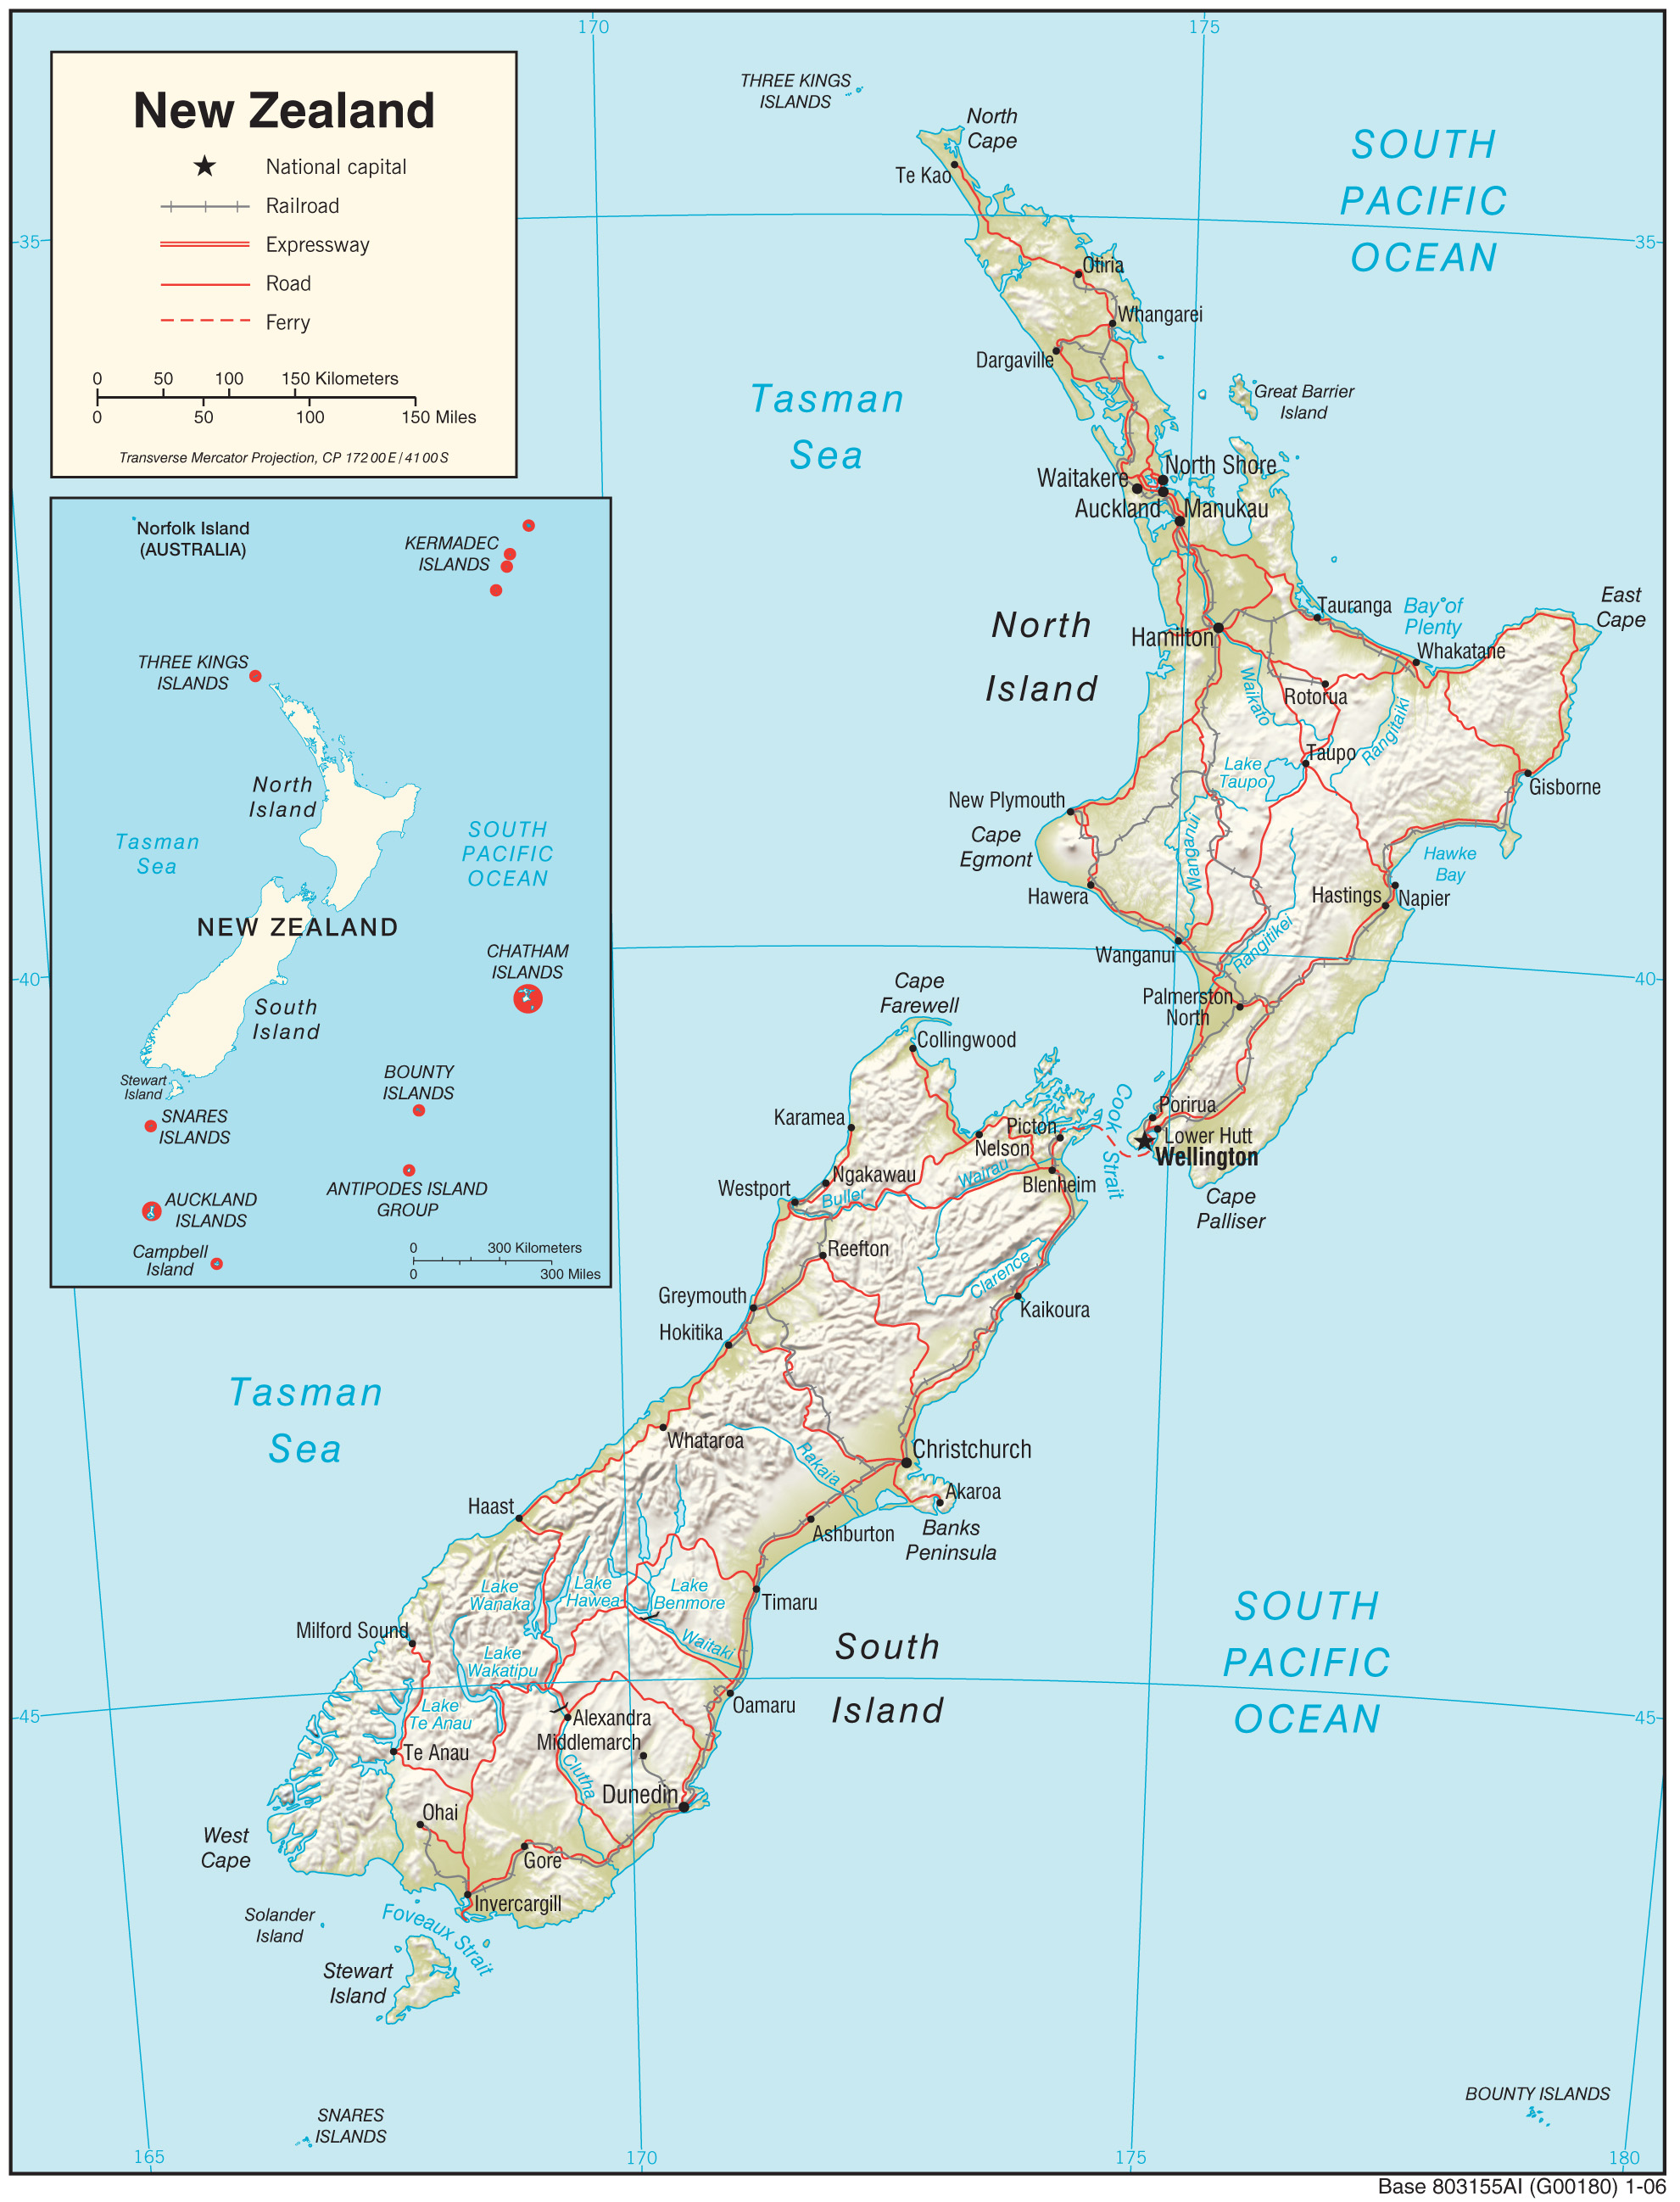 New Zealand Maps New Zealand Maps   Perry Castañeda Map Collection   UT Library Online New Zealand Maps